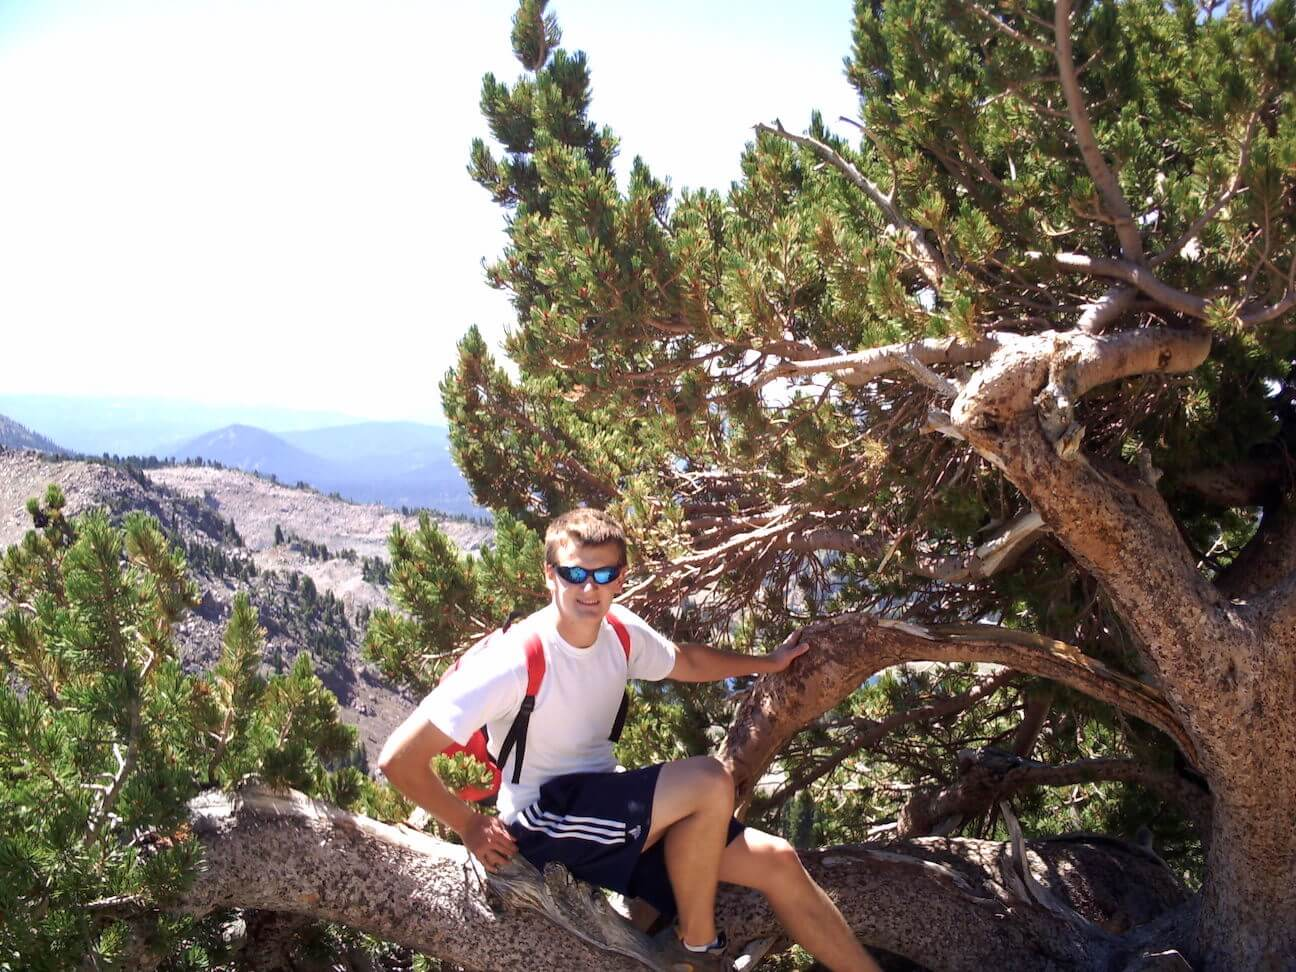 My son Patrick DeMarle taking a short rest during the hike up to Lassen Peak, photo courtesy Laura Power.